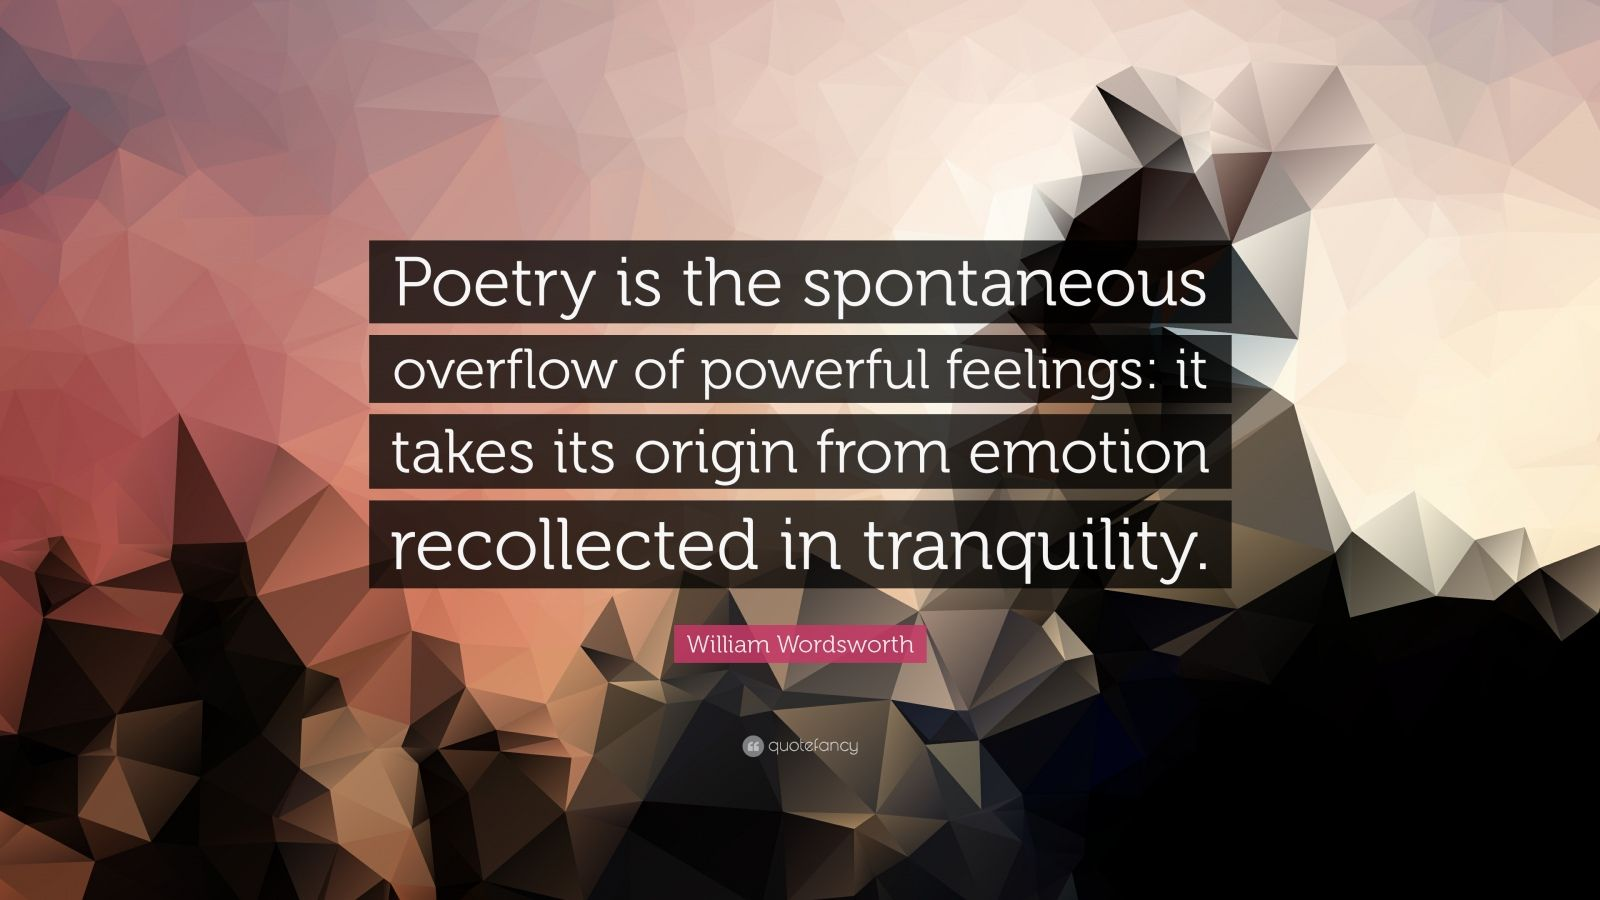 poetry is a spontaneous overflow of powerful feeling recalled in tranquility wordsworth Poets on poetry famous quotations 'poetry is the spontaneous overflow of powerful feelings: william wordsworth 'a good poet is someone who manages.